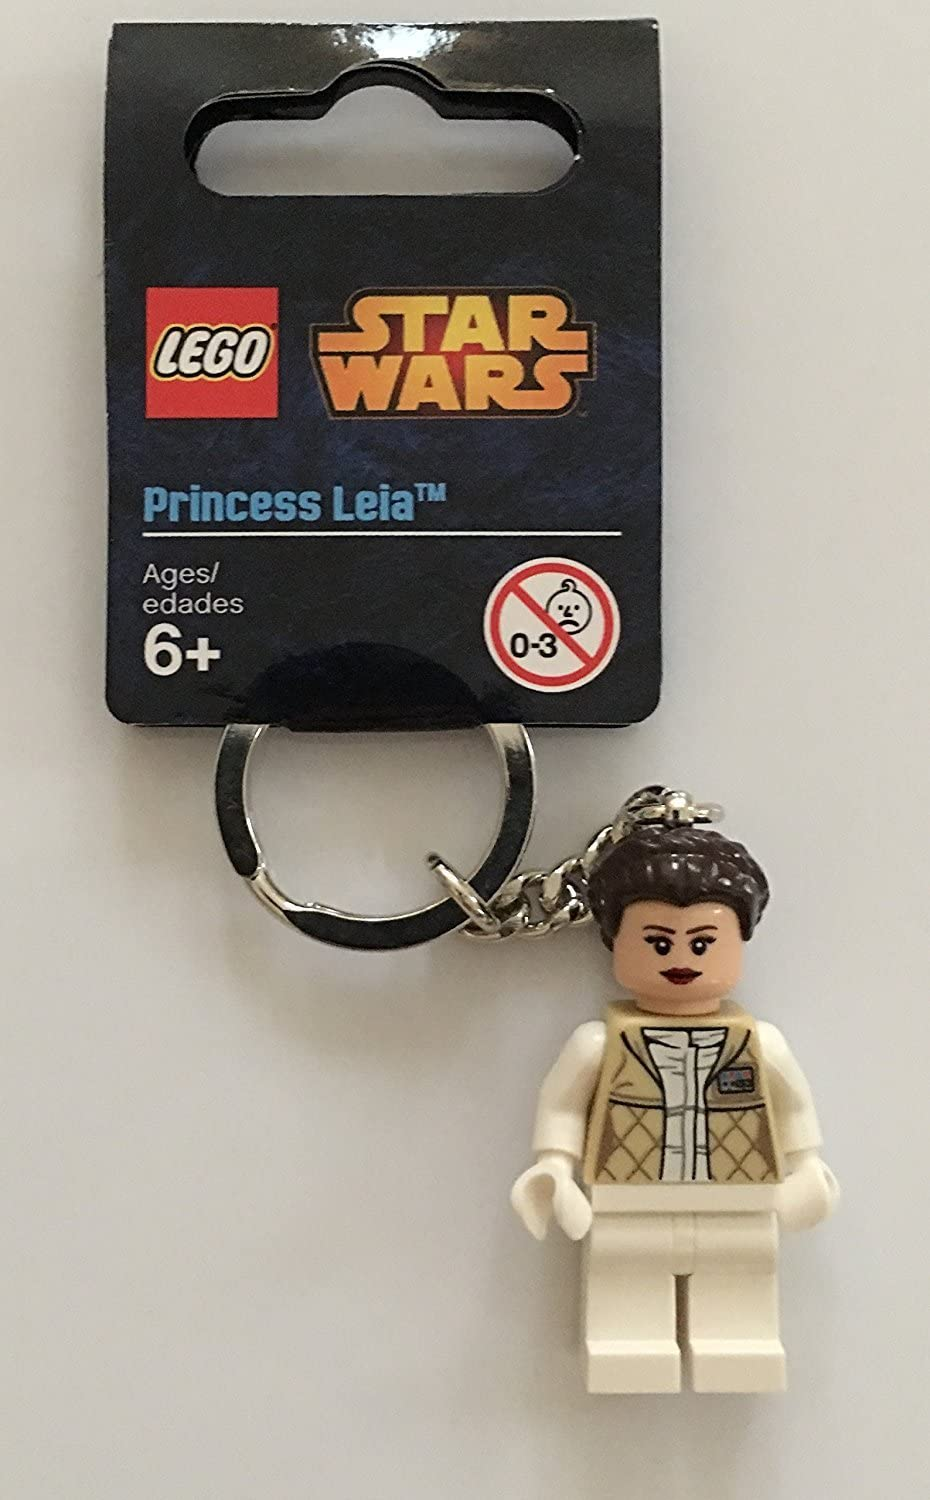 LEGO Star Wars Princess Leia Minifigure Key Chain 850997